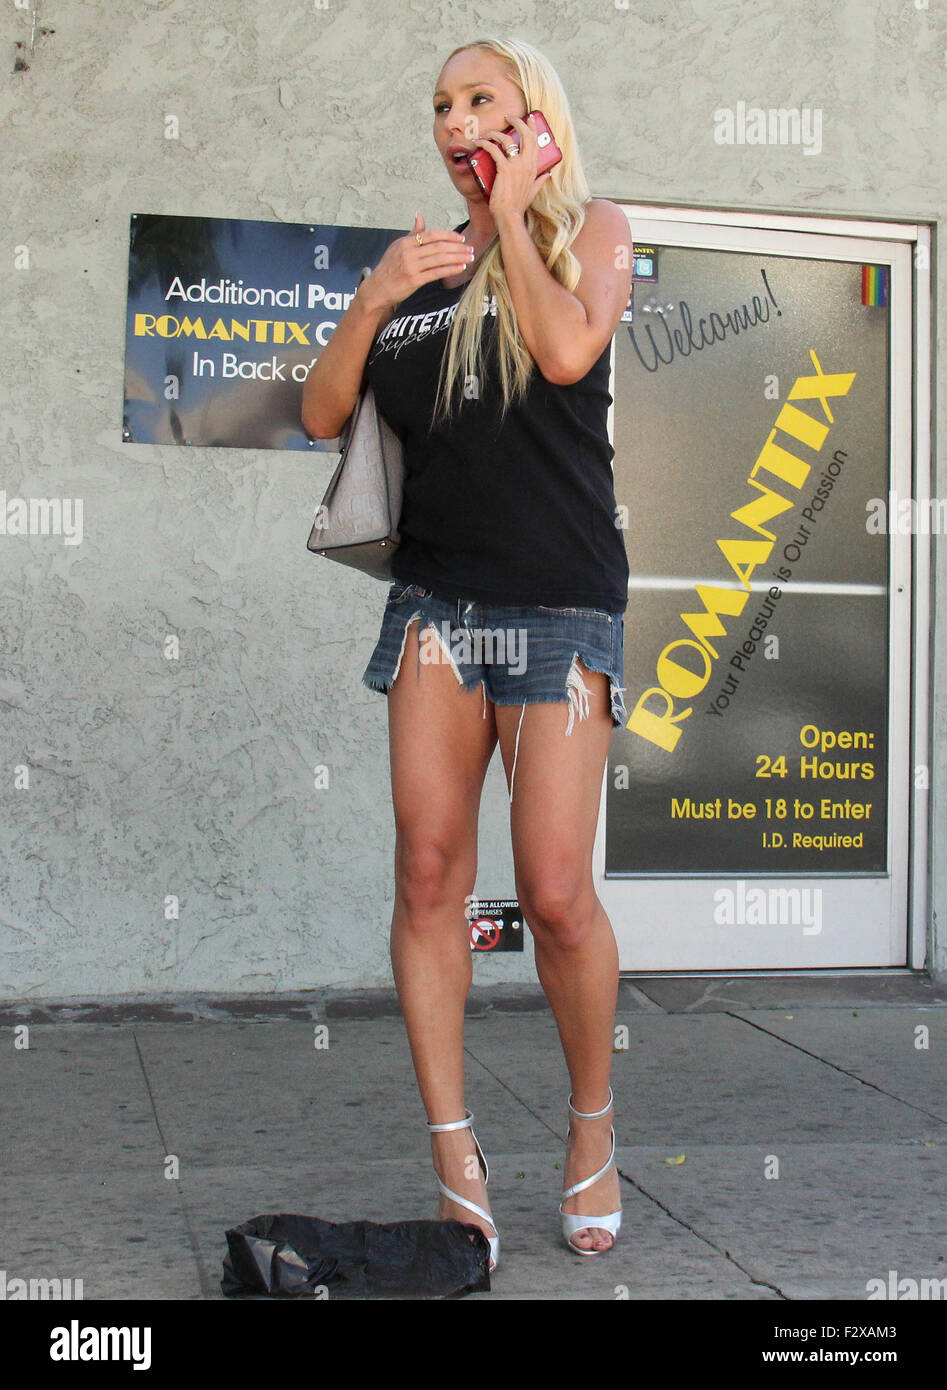 Mary Carey leaves Romantix adult bookstore, dropping her purchase on the  way out Featuring: Mary Carey Where: Los Angeles, California, United States  When: ...